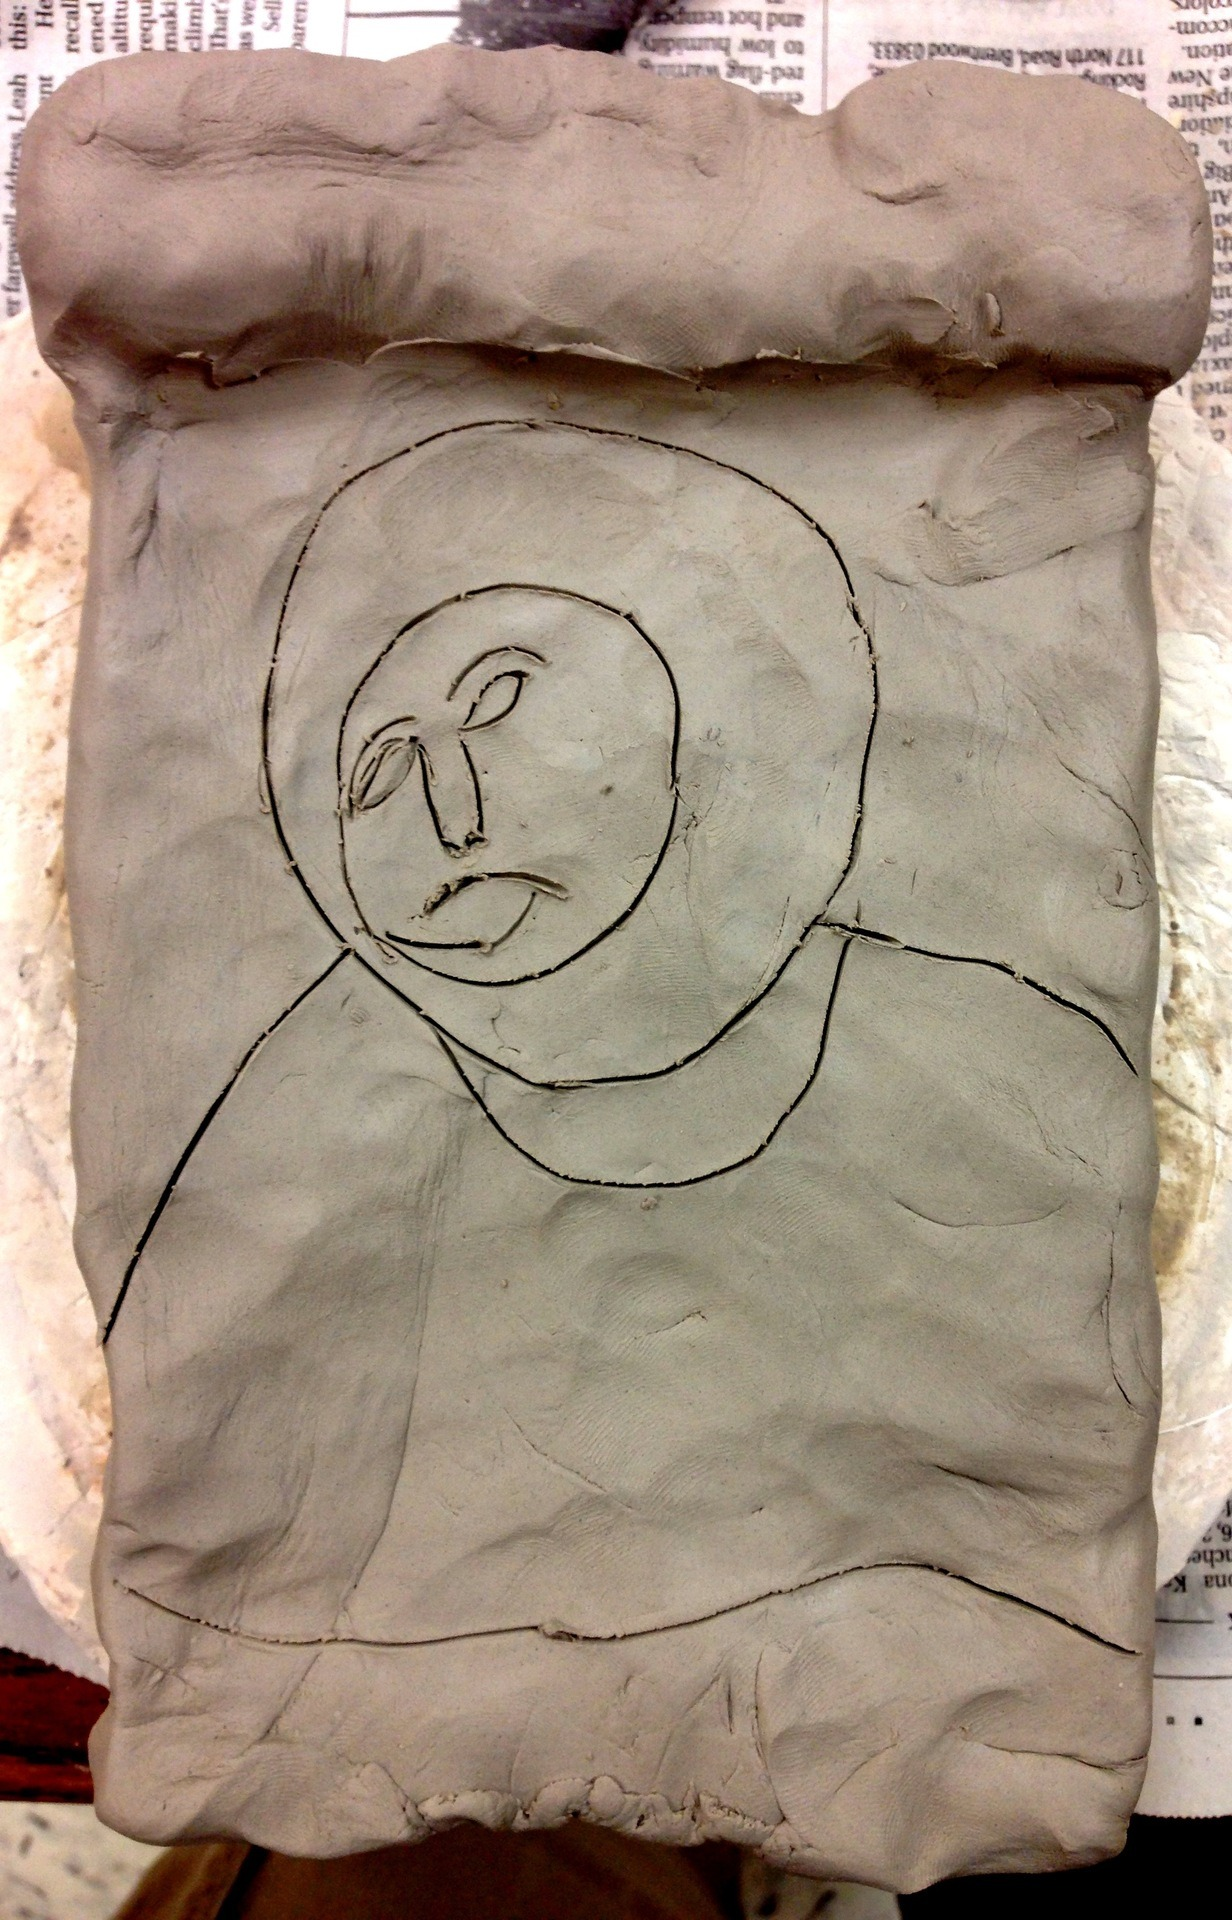 The first stage of my next pottery project. Clay Monkey Jesus - IN 3D!